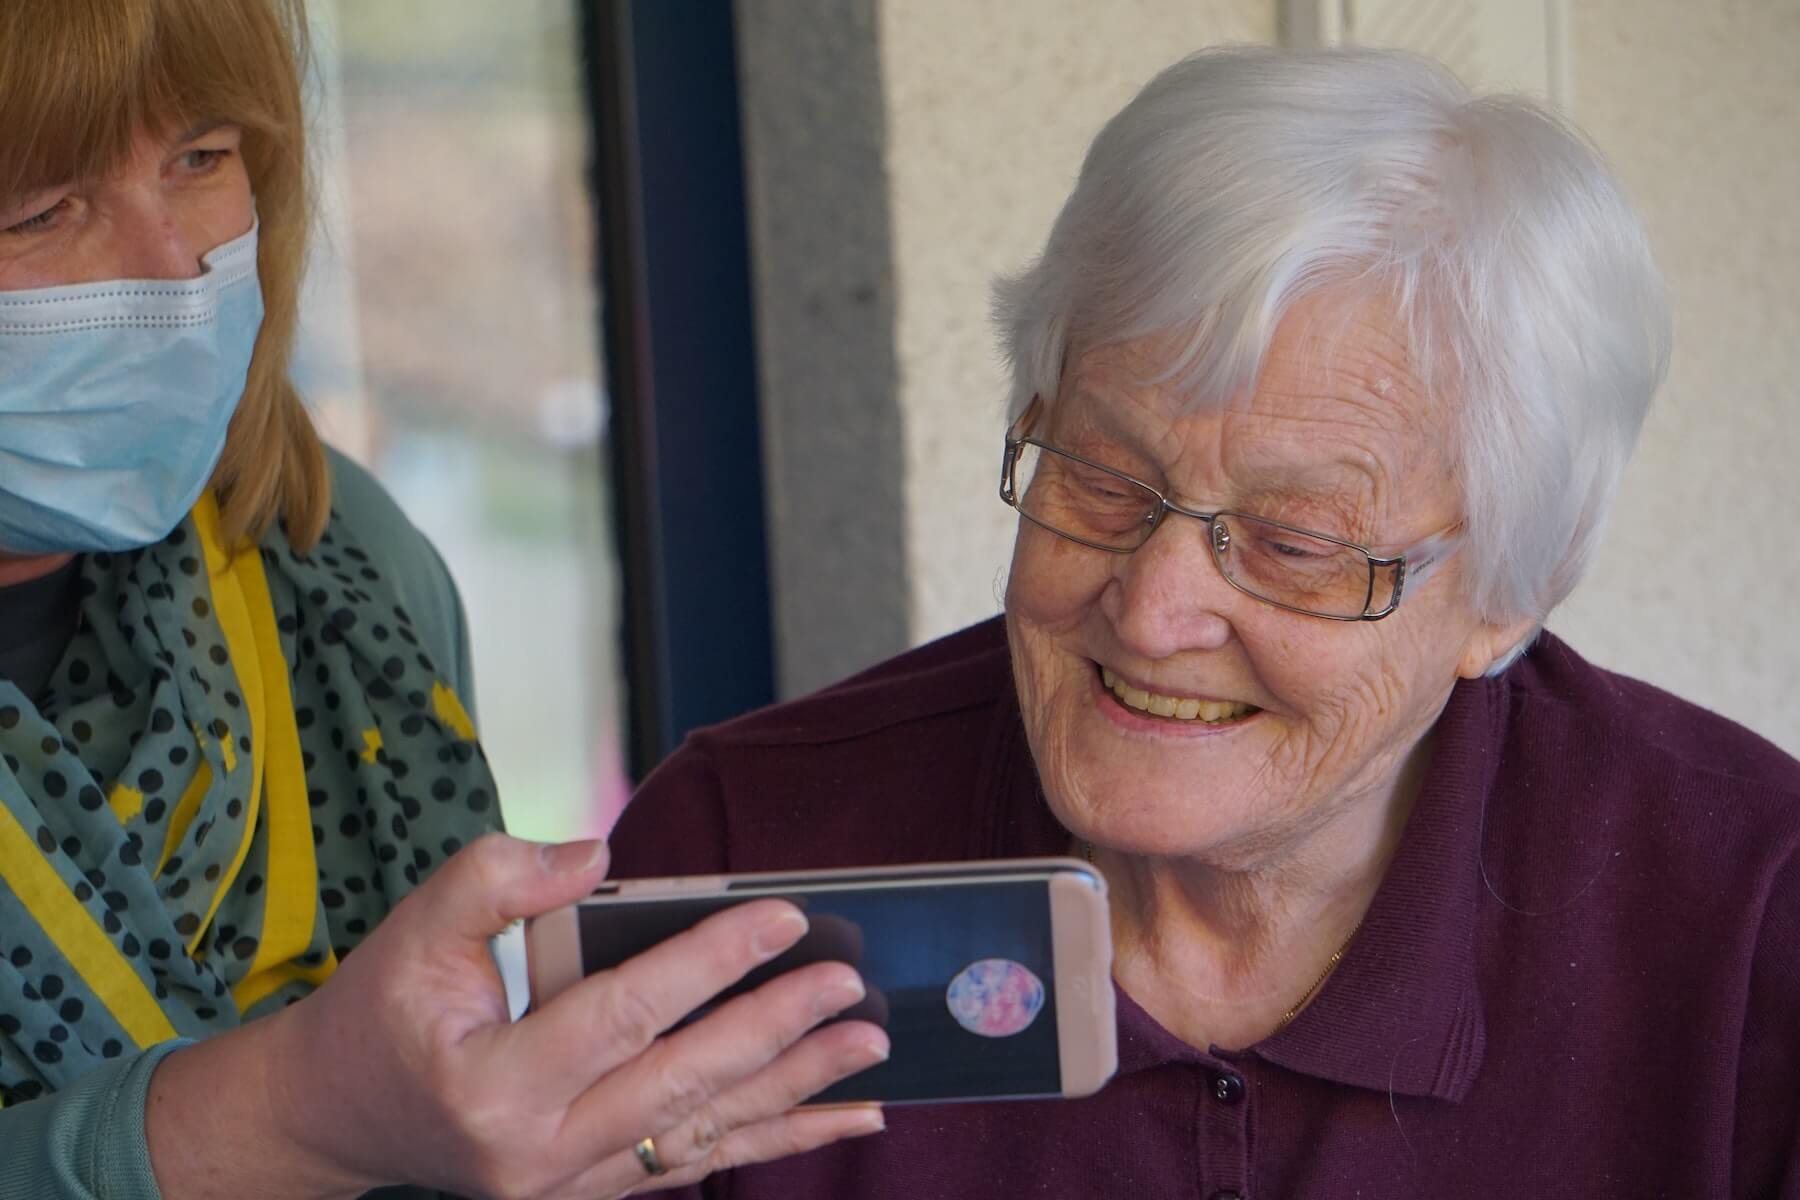 home health nurse with mask on shows elderly woman something on her phone home health nursing